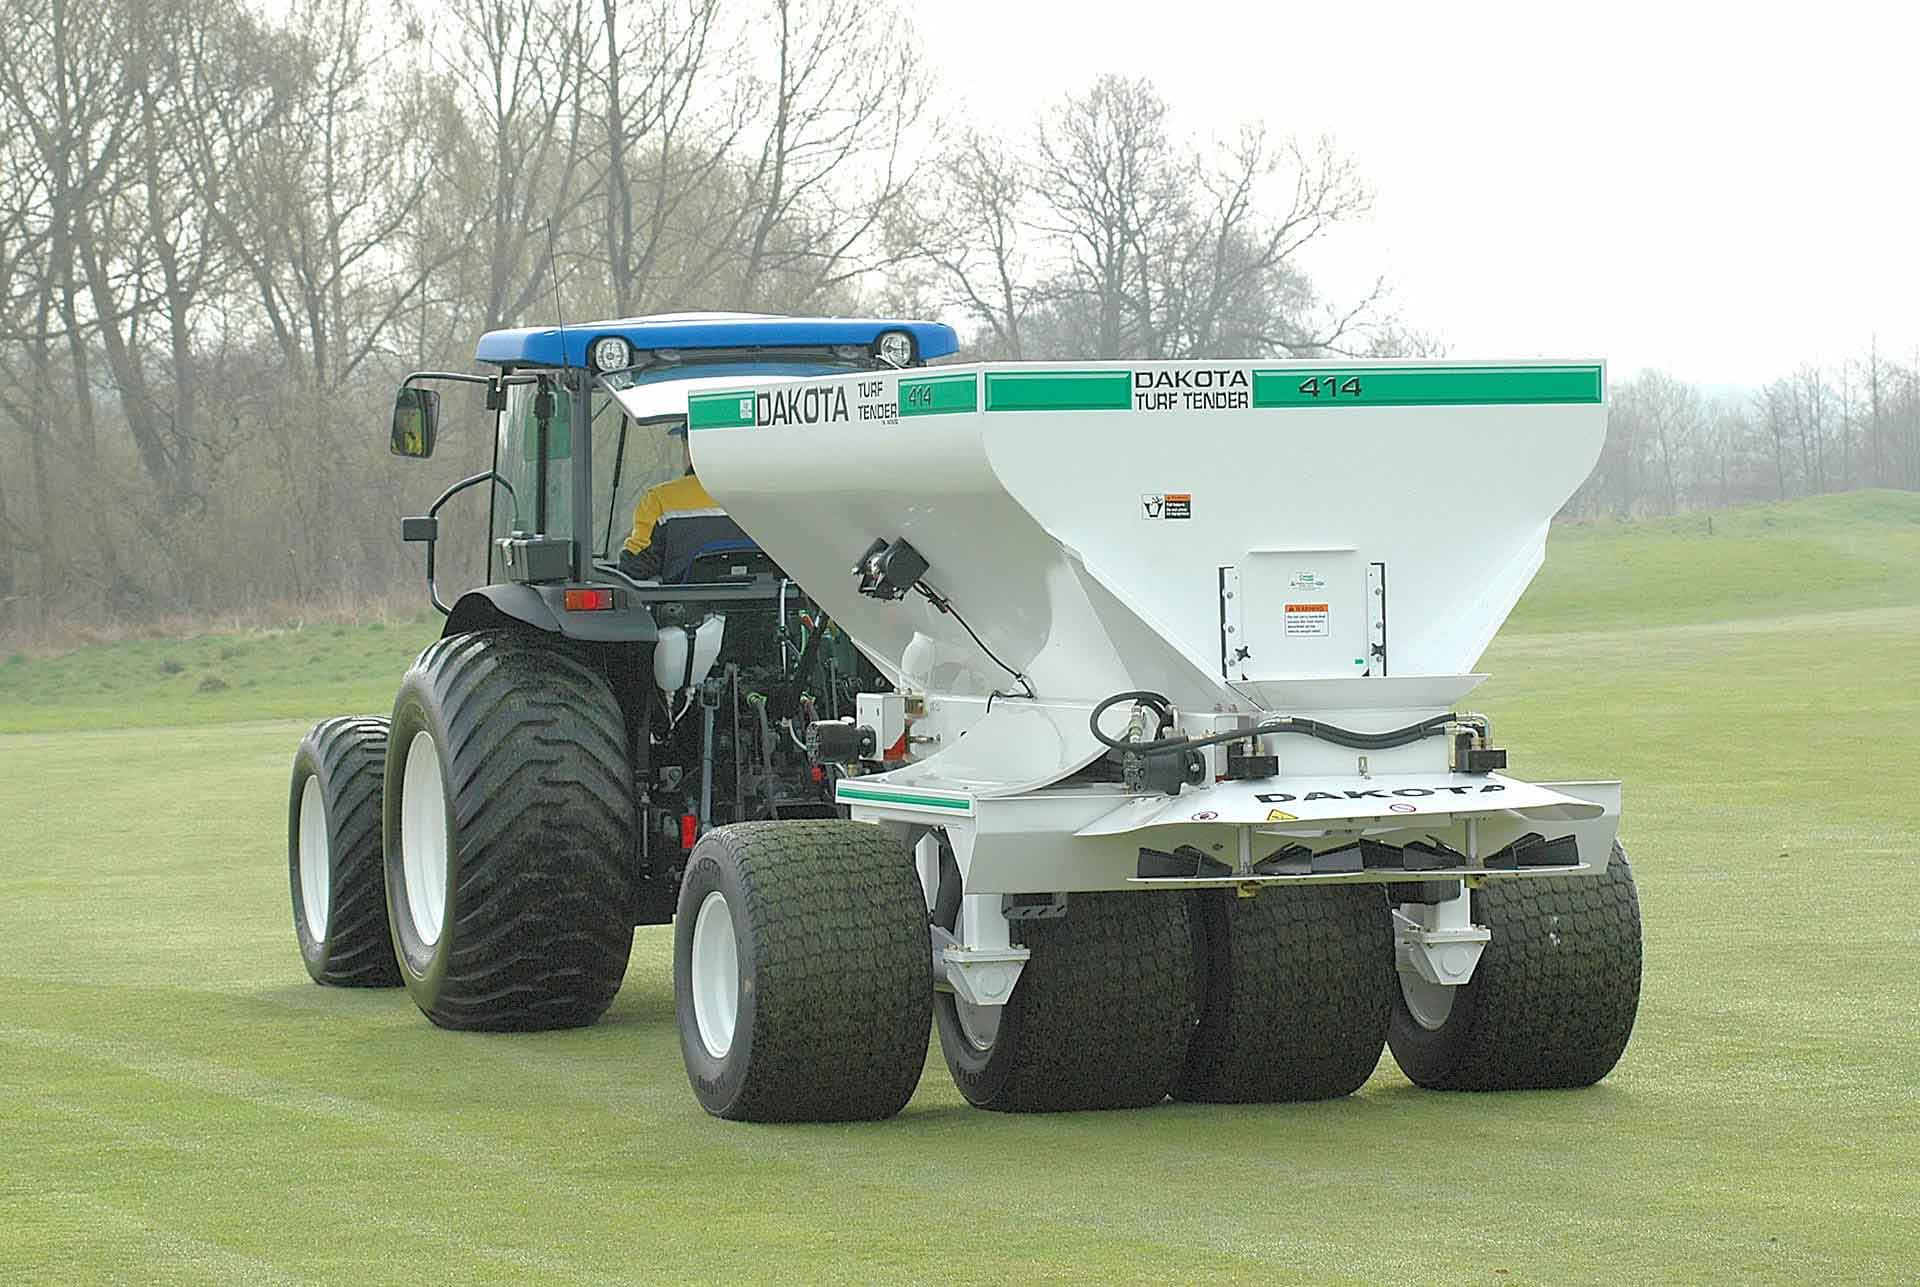 Dakota - Turf Tender - Campey Turf Care Systems on